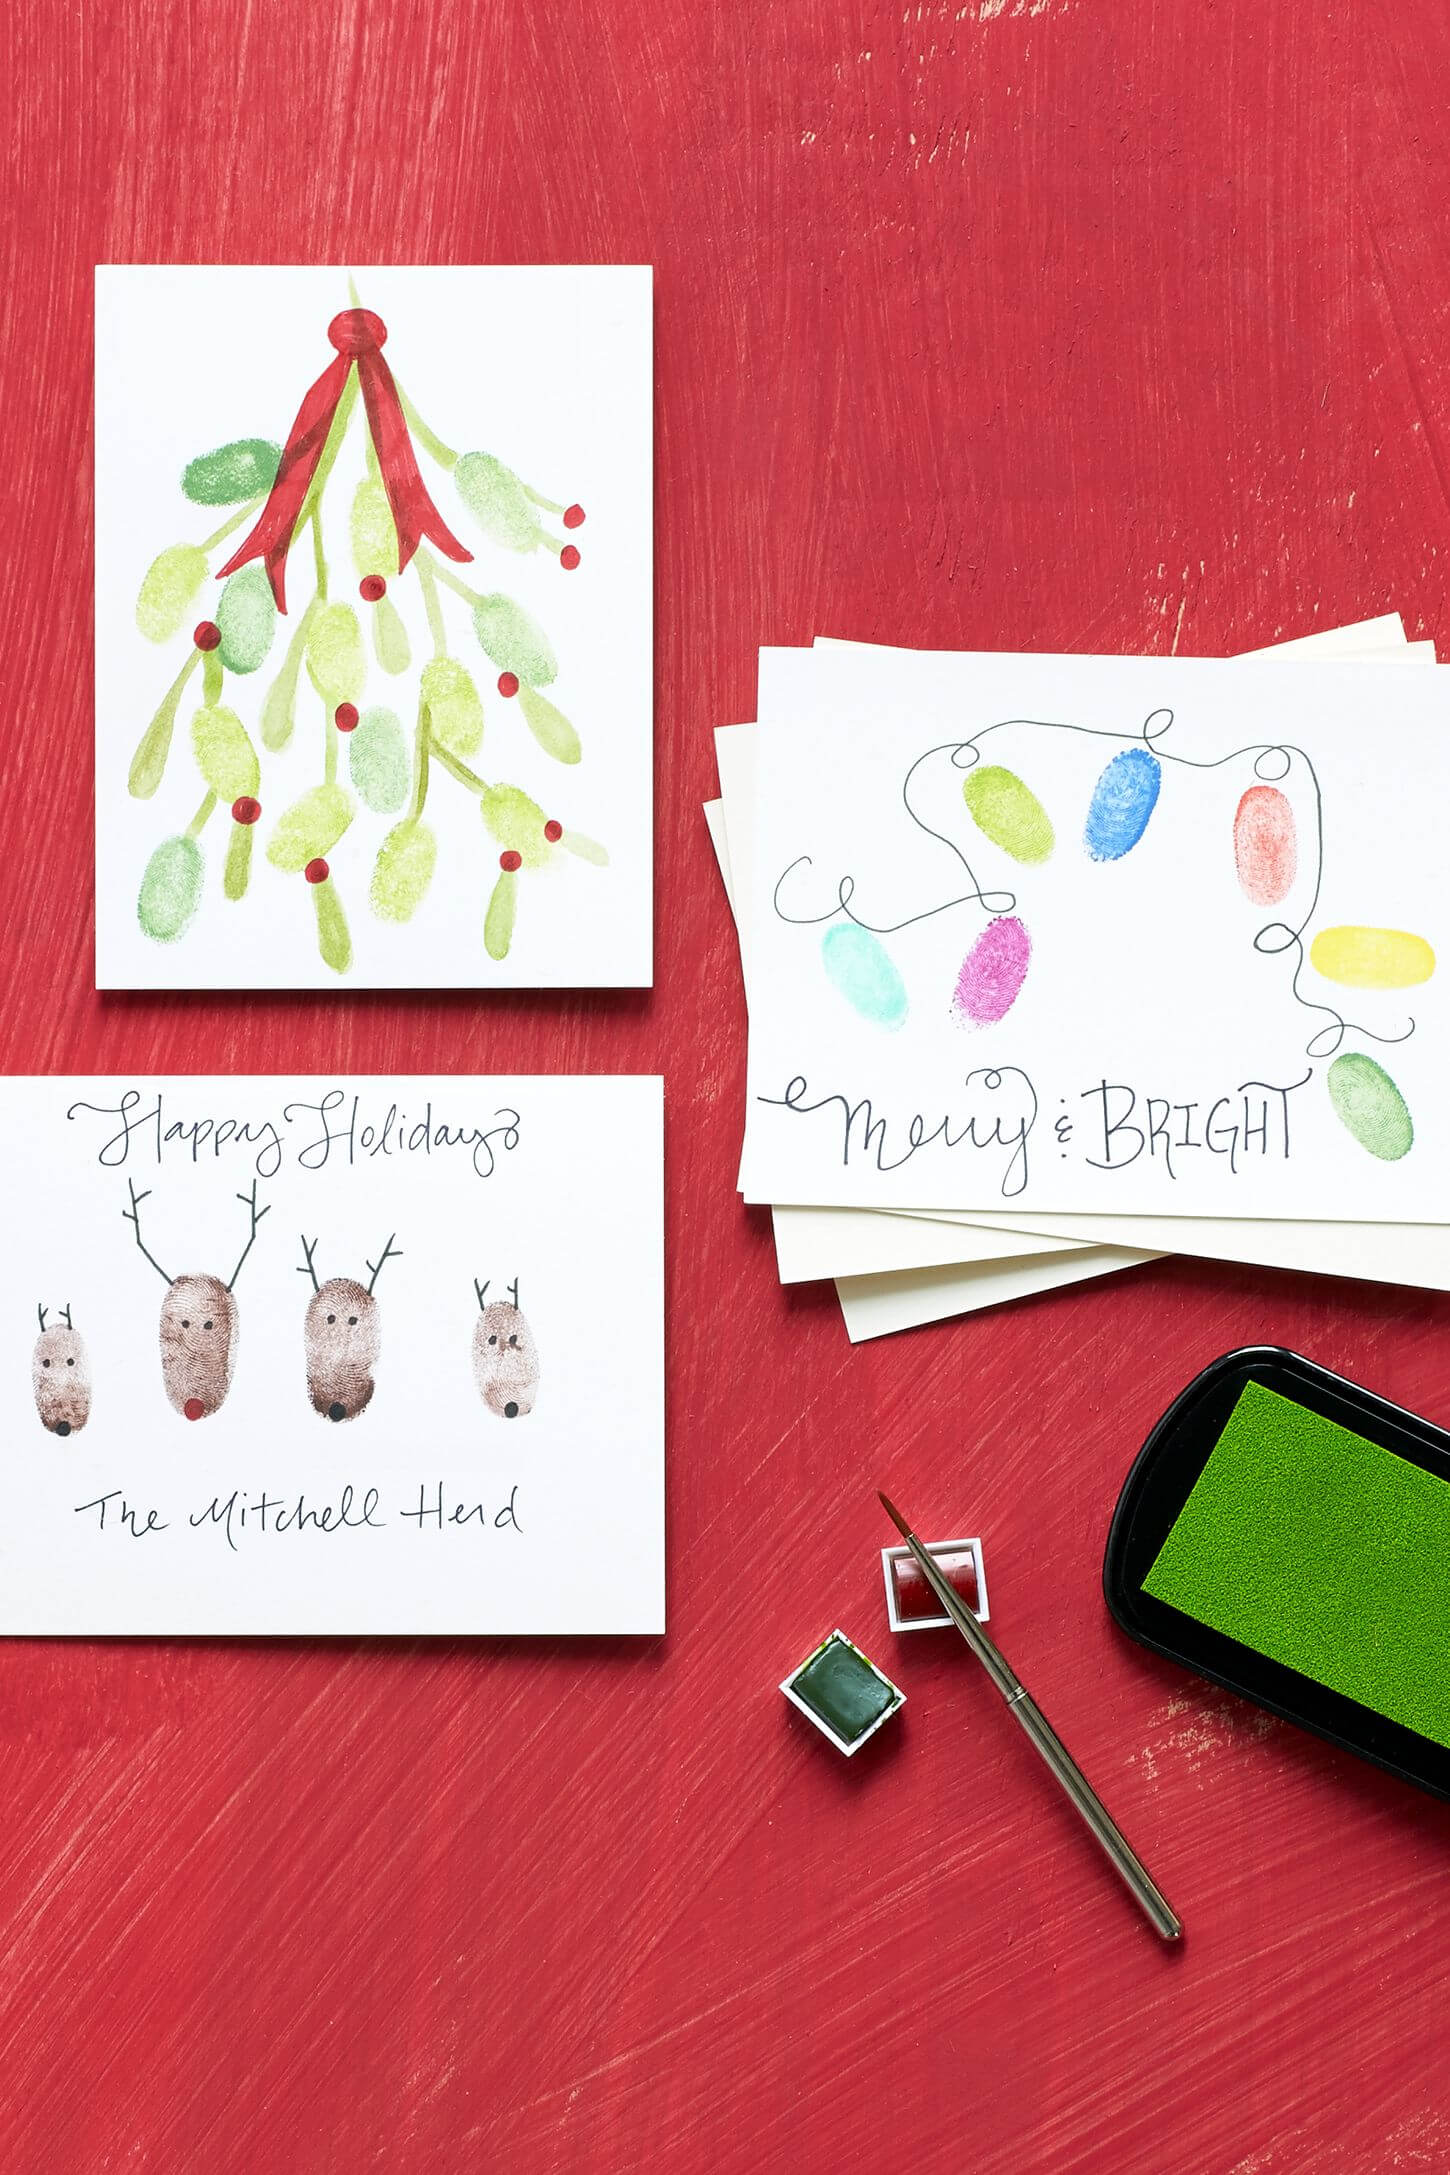 30 Diy Christmas Card Ideas - Funny Christmas Cards We're Throughout Diy Christmas Card Templates